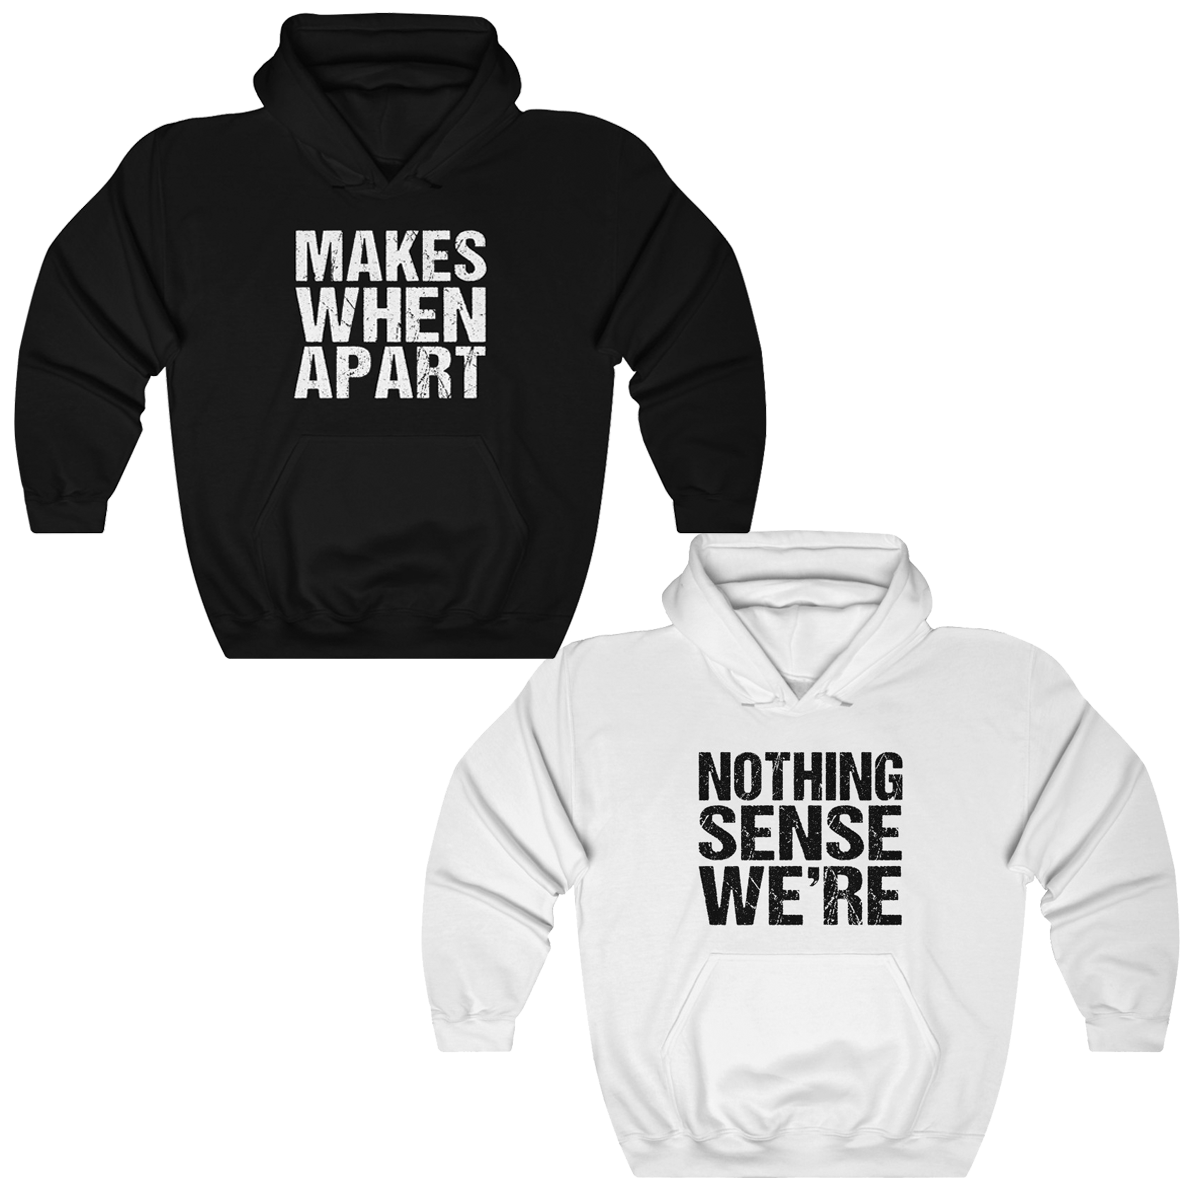 Nothing Make Sense Couples Hoodies